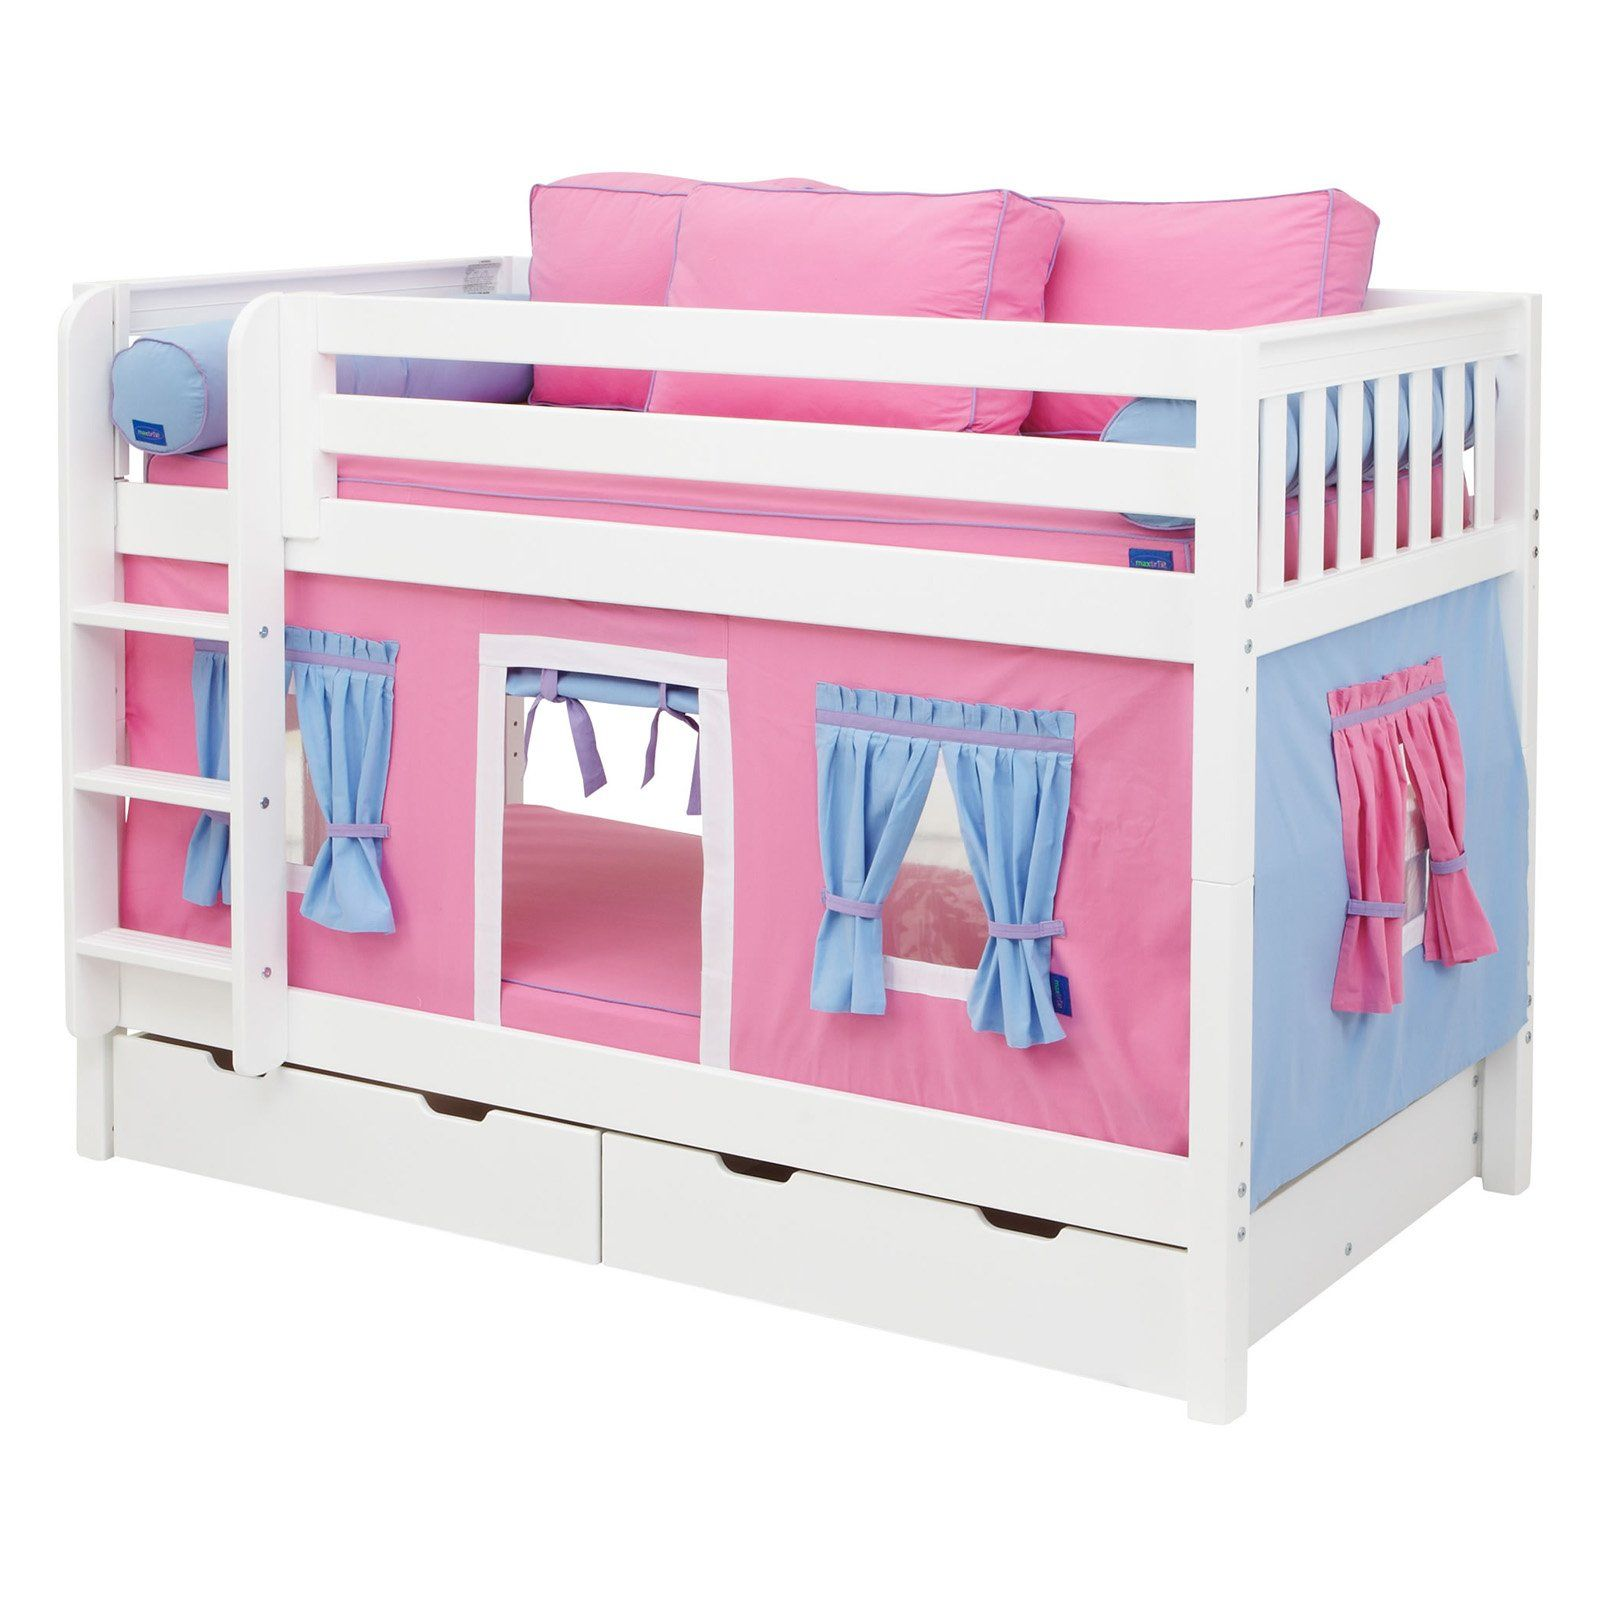 Hot Shot Girl Twin over Twin Tent Bunk Bed $1289.99  sc 1 st  Pinterest & Have to have it. Hot Shot Girl Twin over Twin Tent Bunk Bed ...